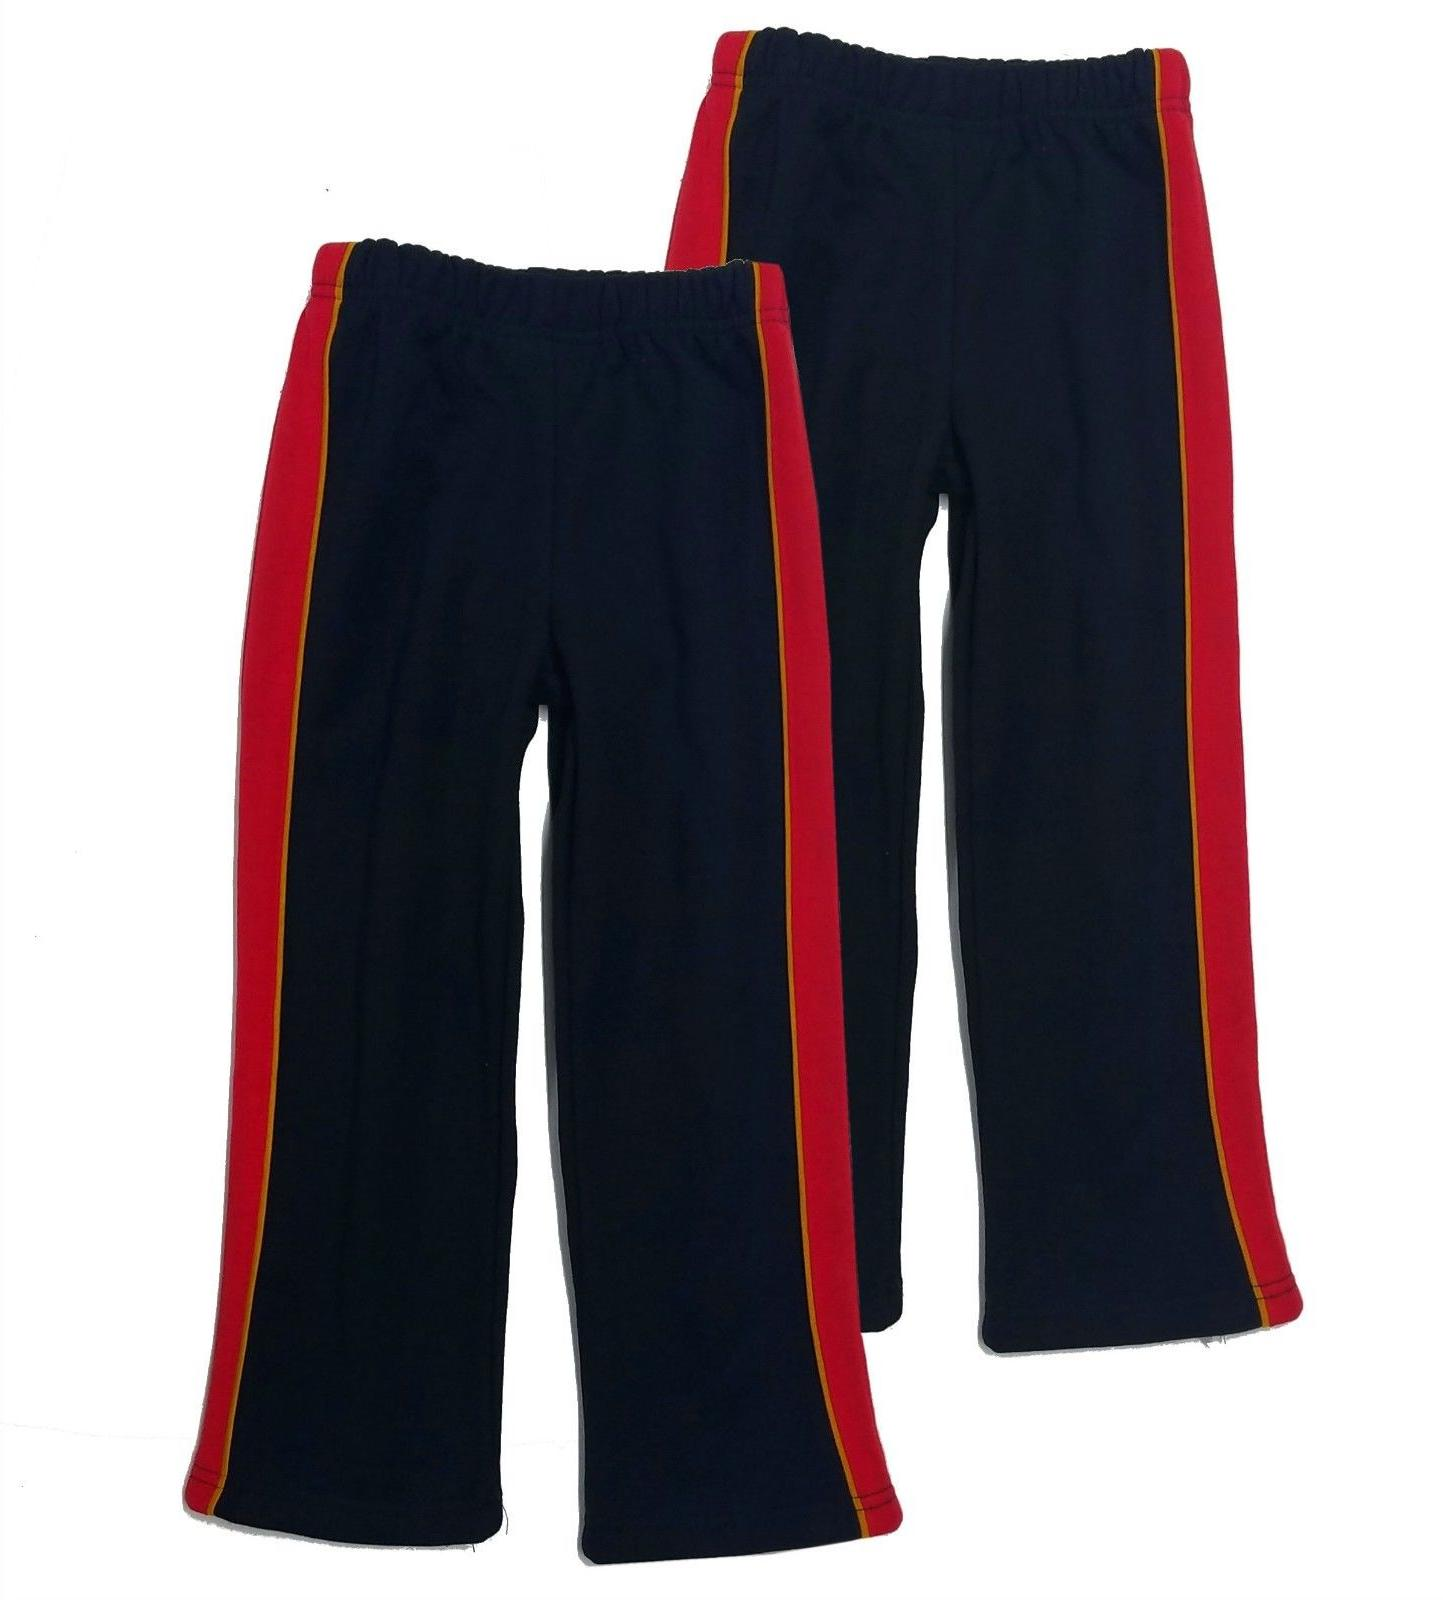 boys 2 pack sweatpants athletic fleece track